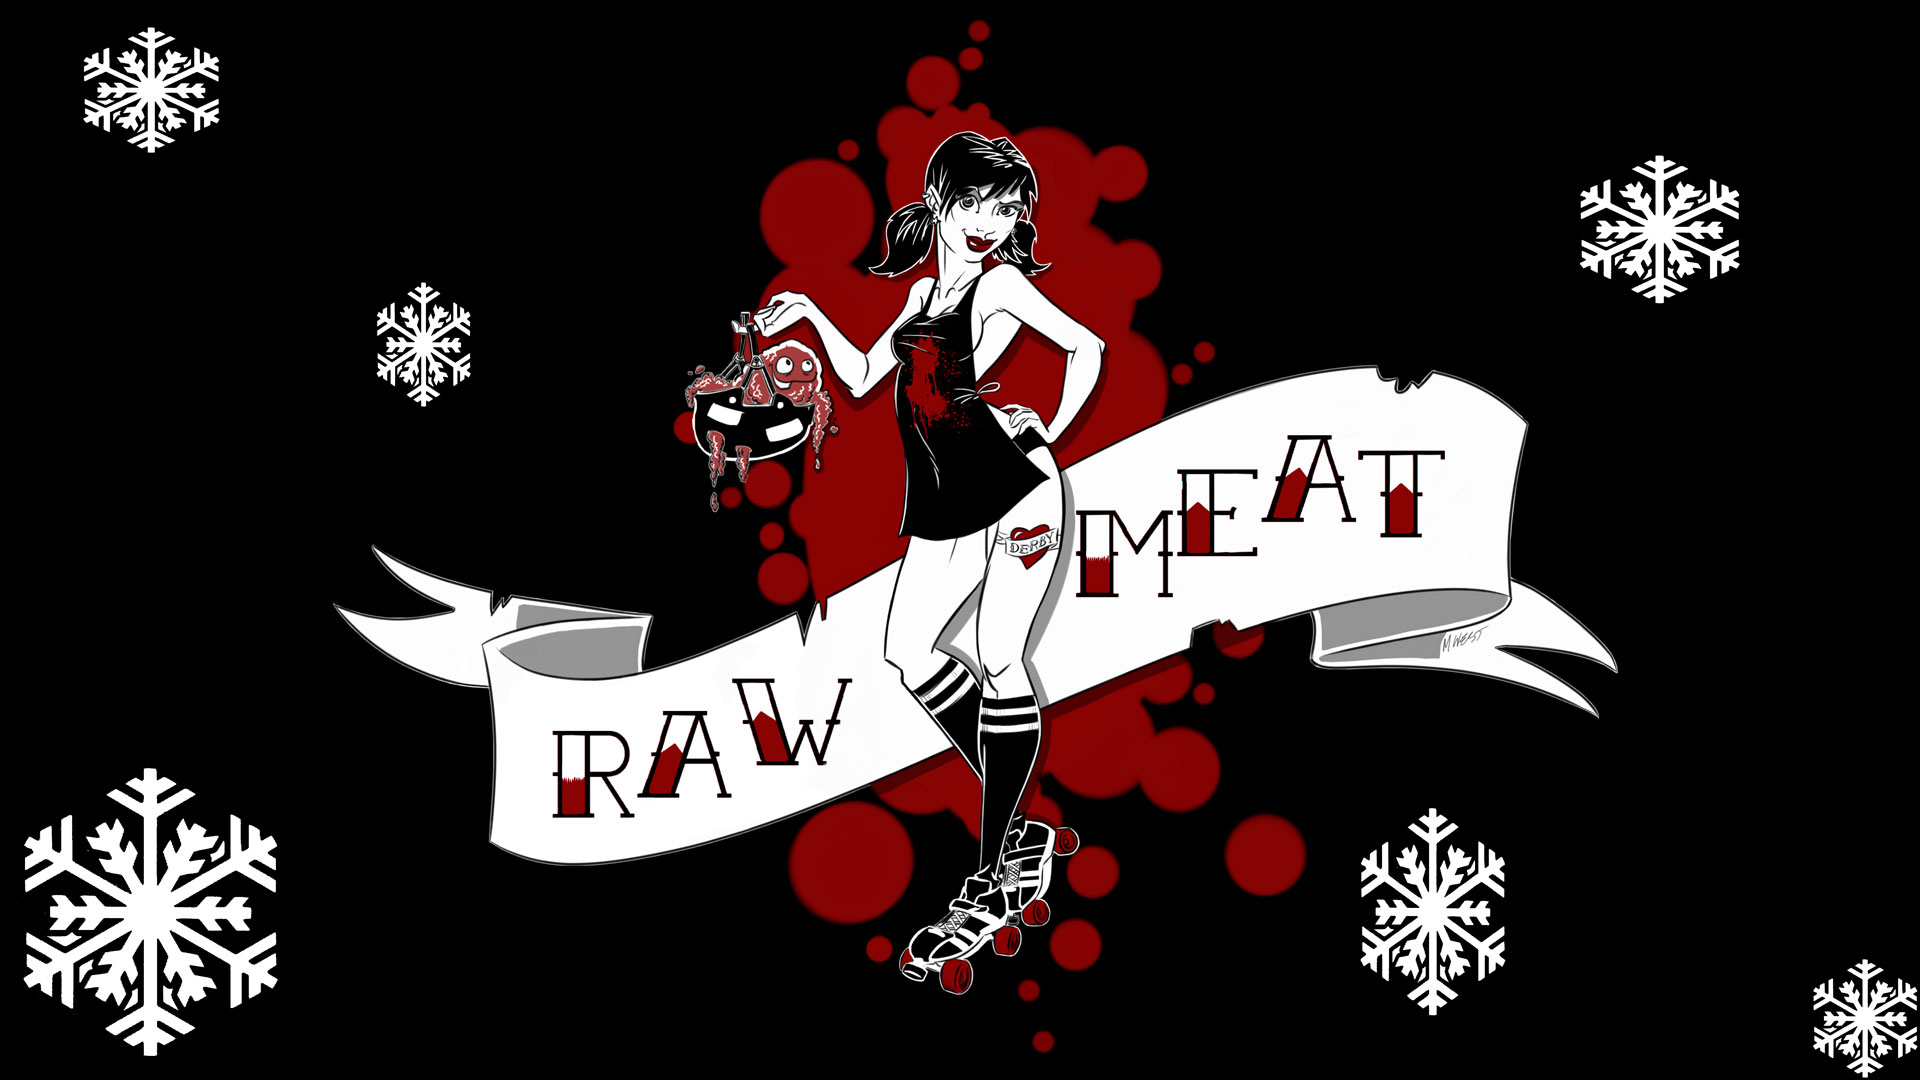 It's cold outside, but it's warm when you come skate with Raw Meat!